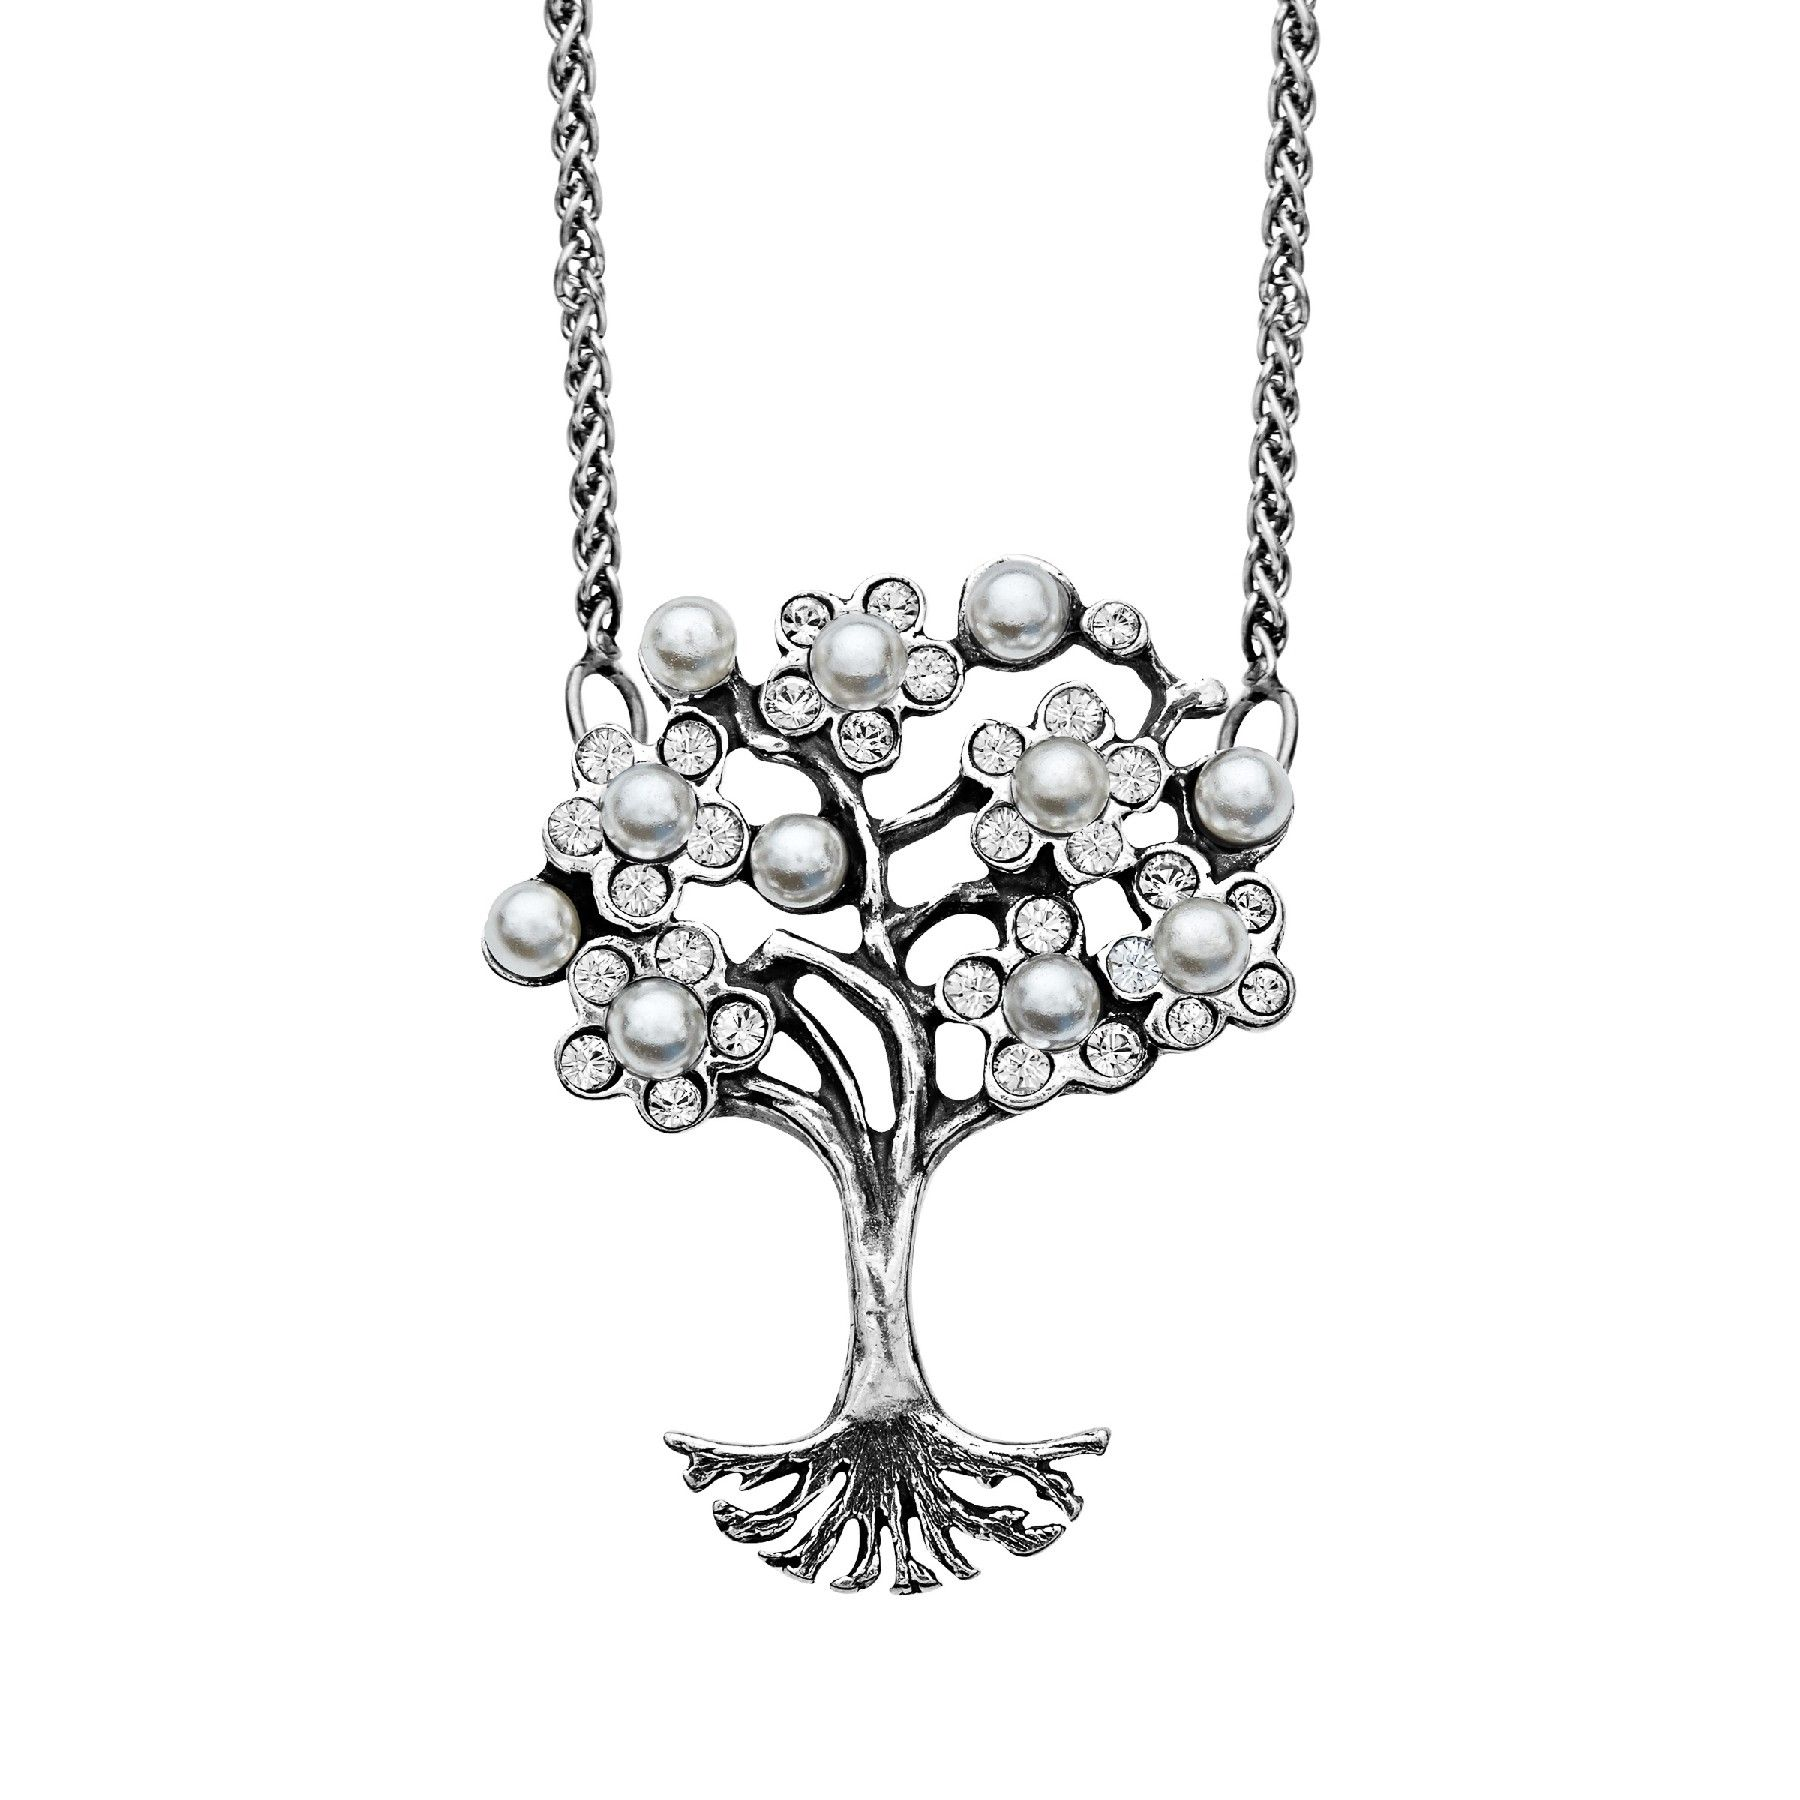 18-Inch Rhodium Plated Necklace with 6mm Peridot Birthstone Beads and Sterling Silver Saint Peter Claver Charm.